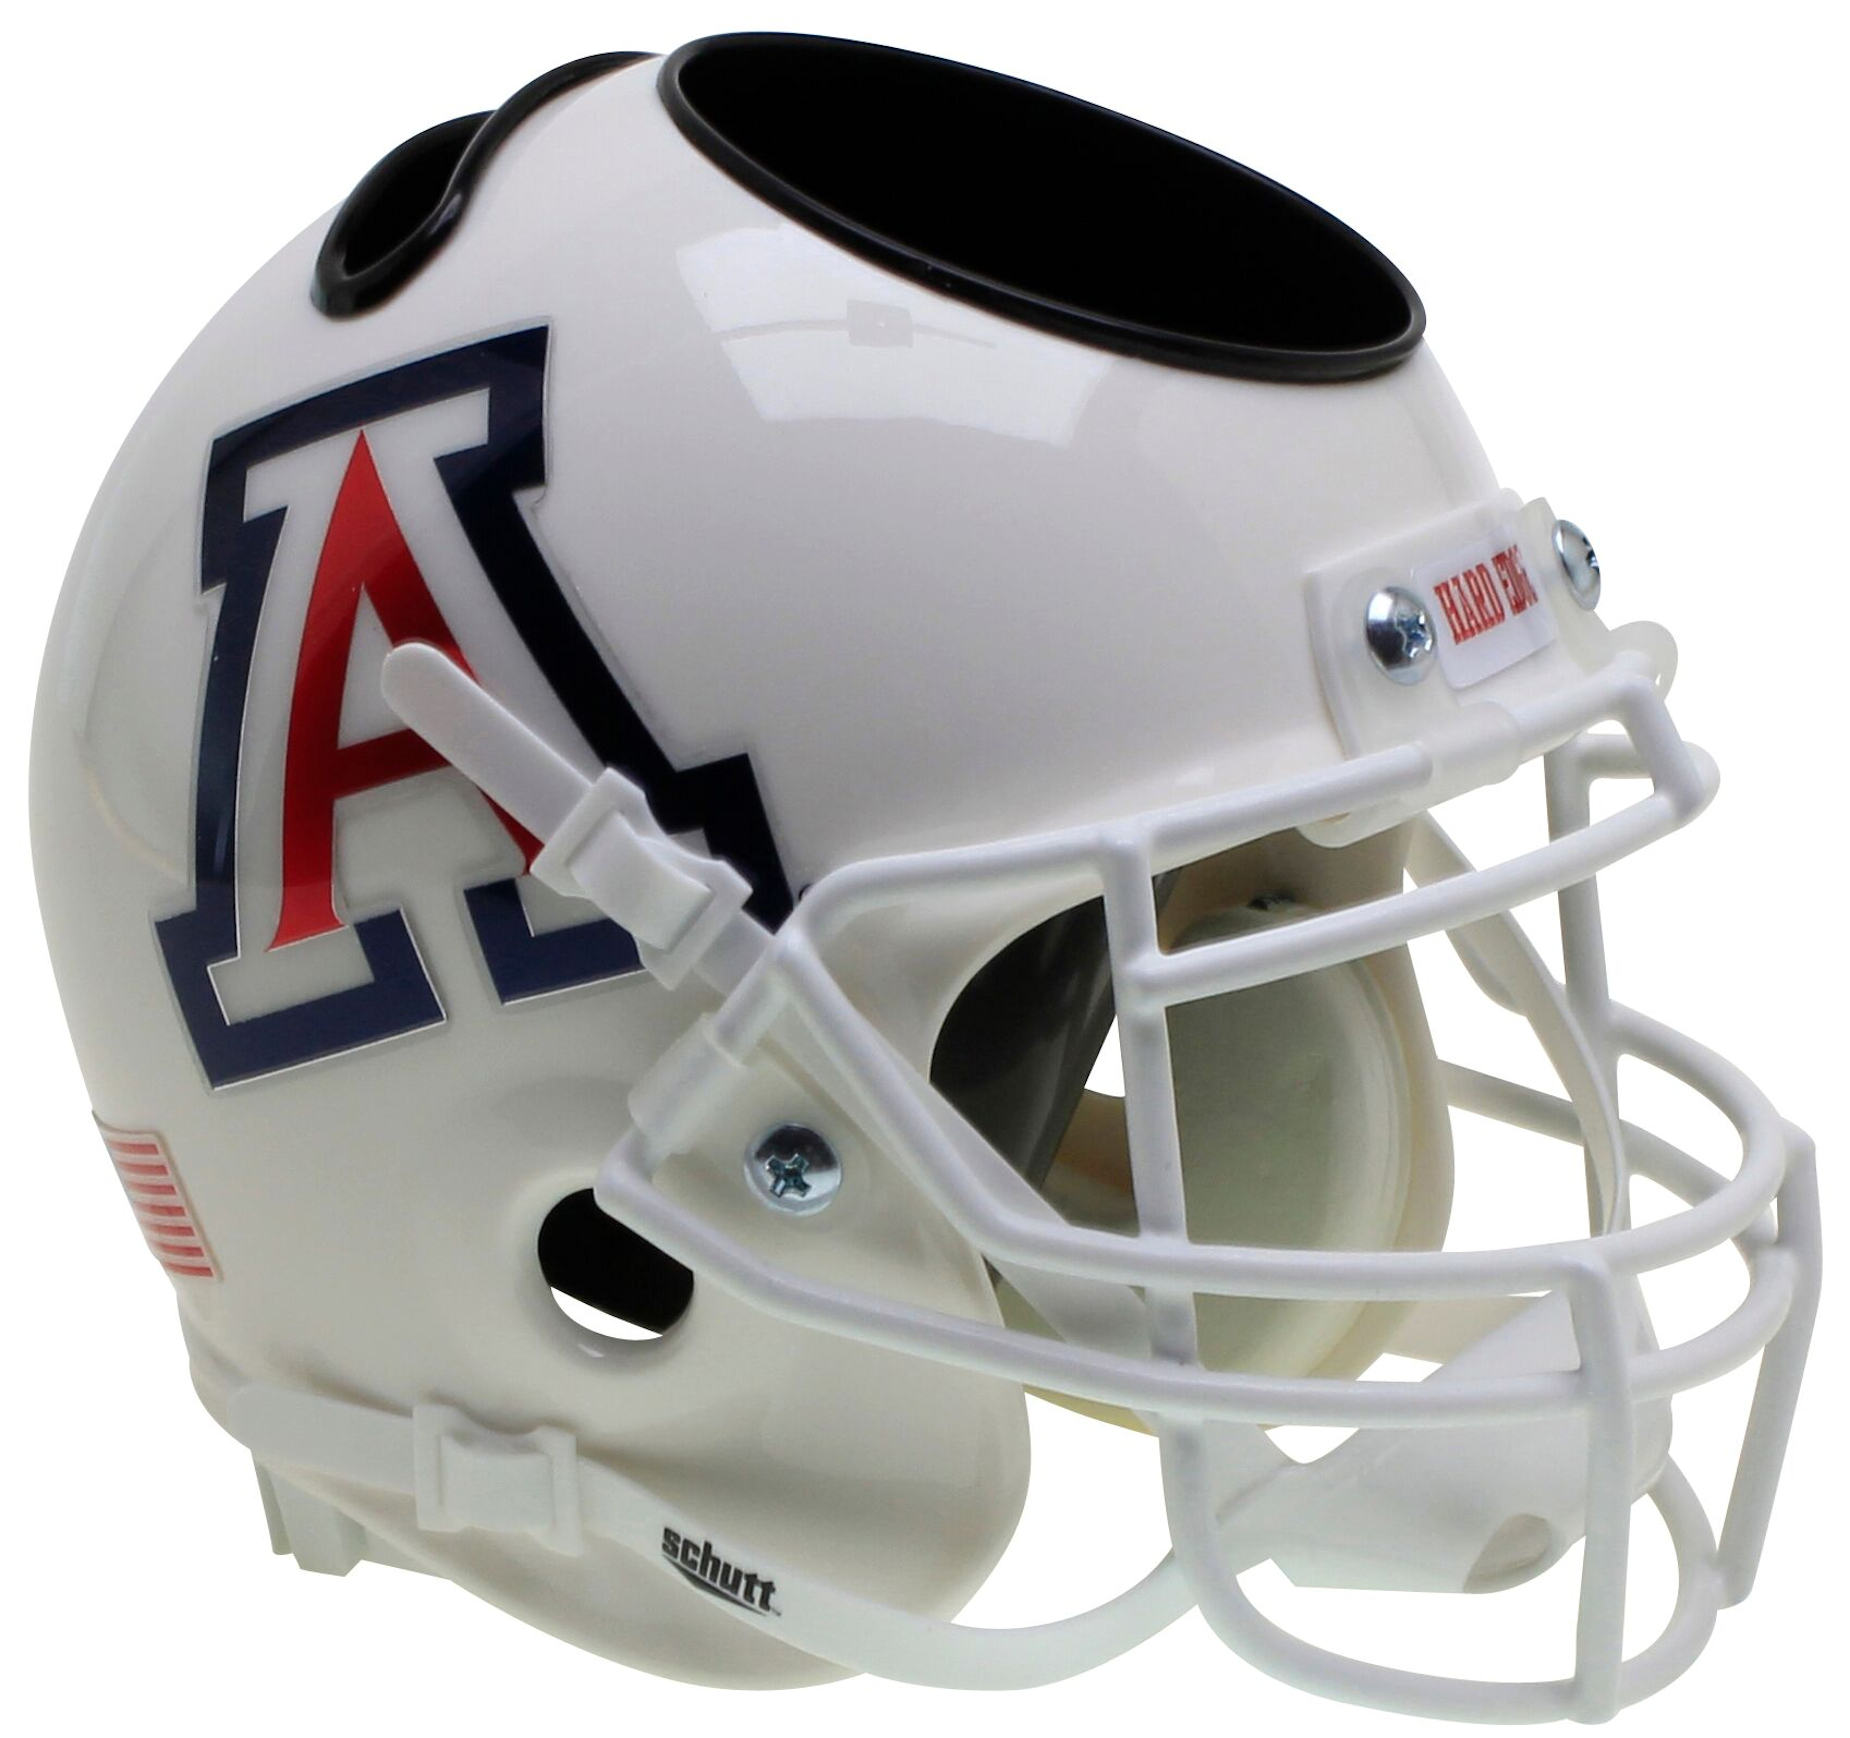 Arizona Wildcats Miniature Football Helmet Desk Caddy <B>White</B>